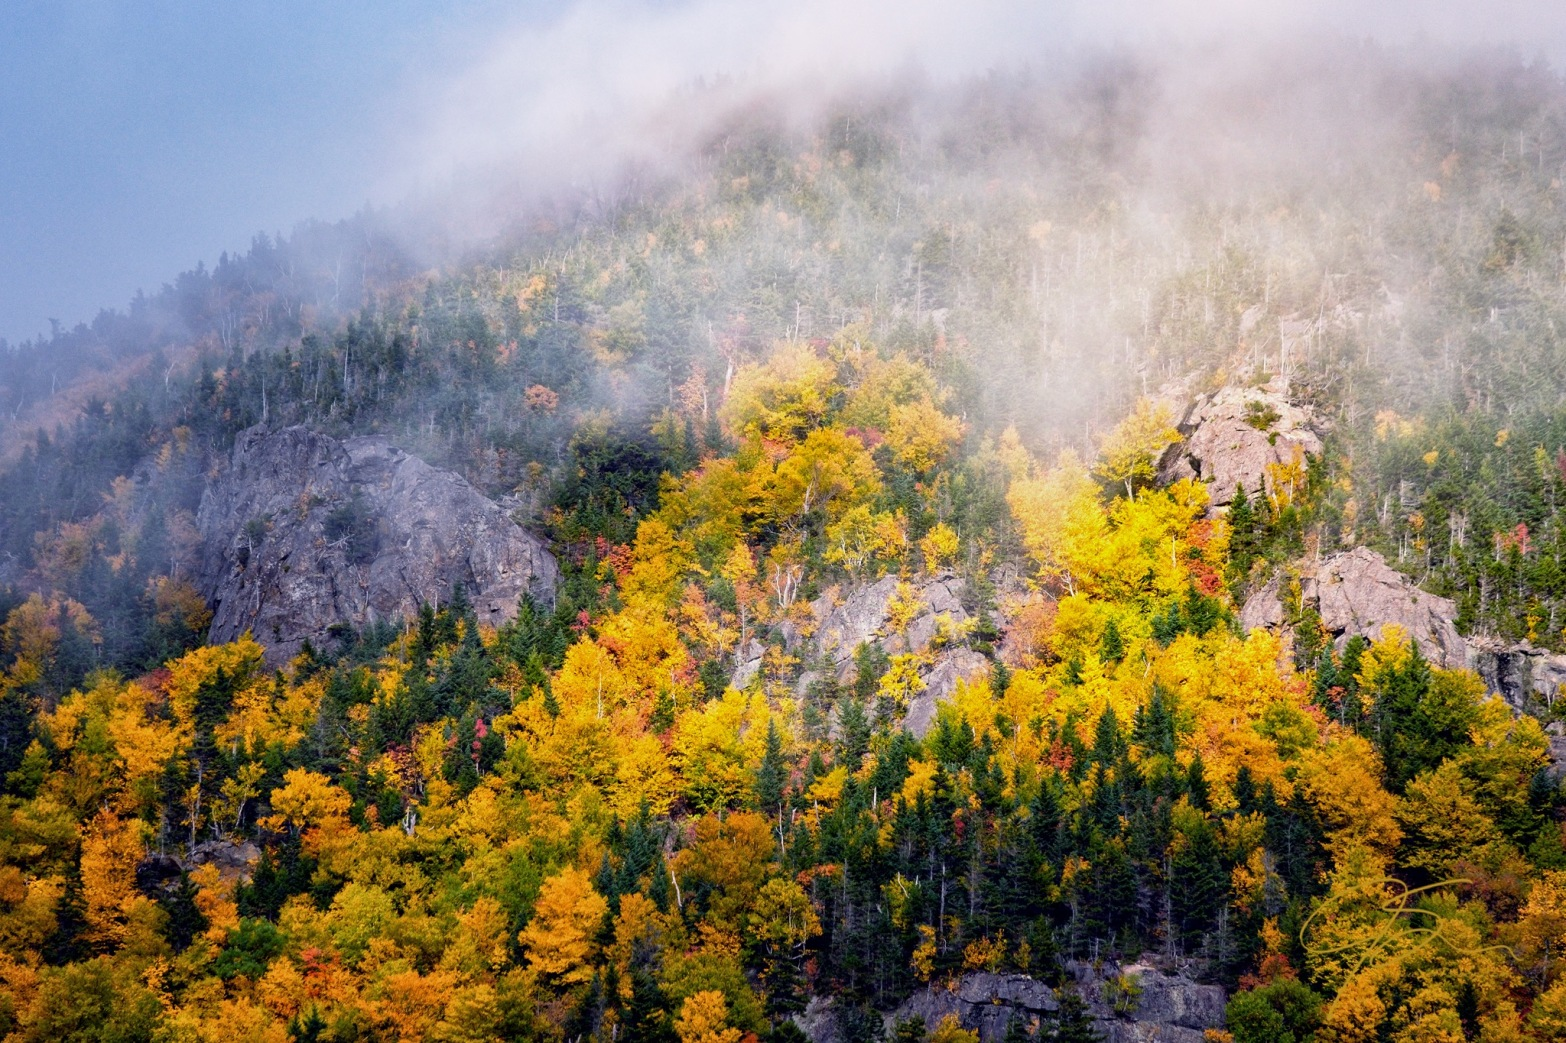 Autumn Light In The Misty Mountains